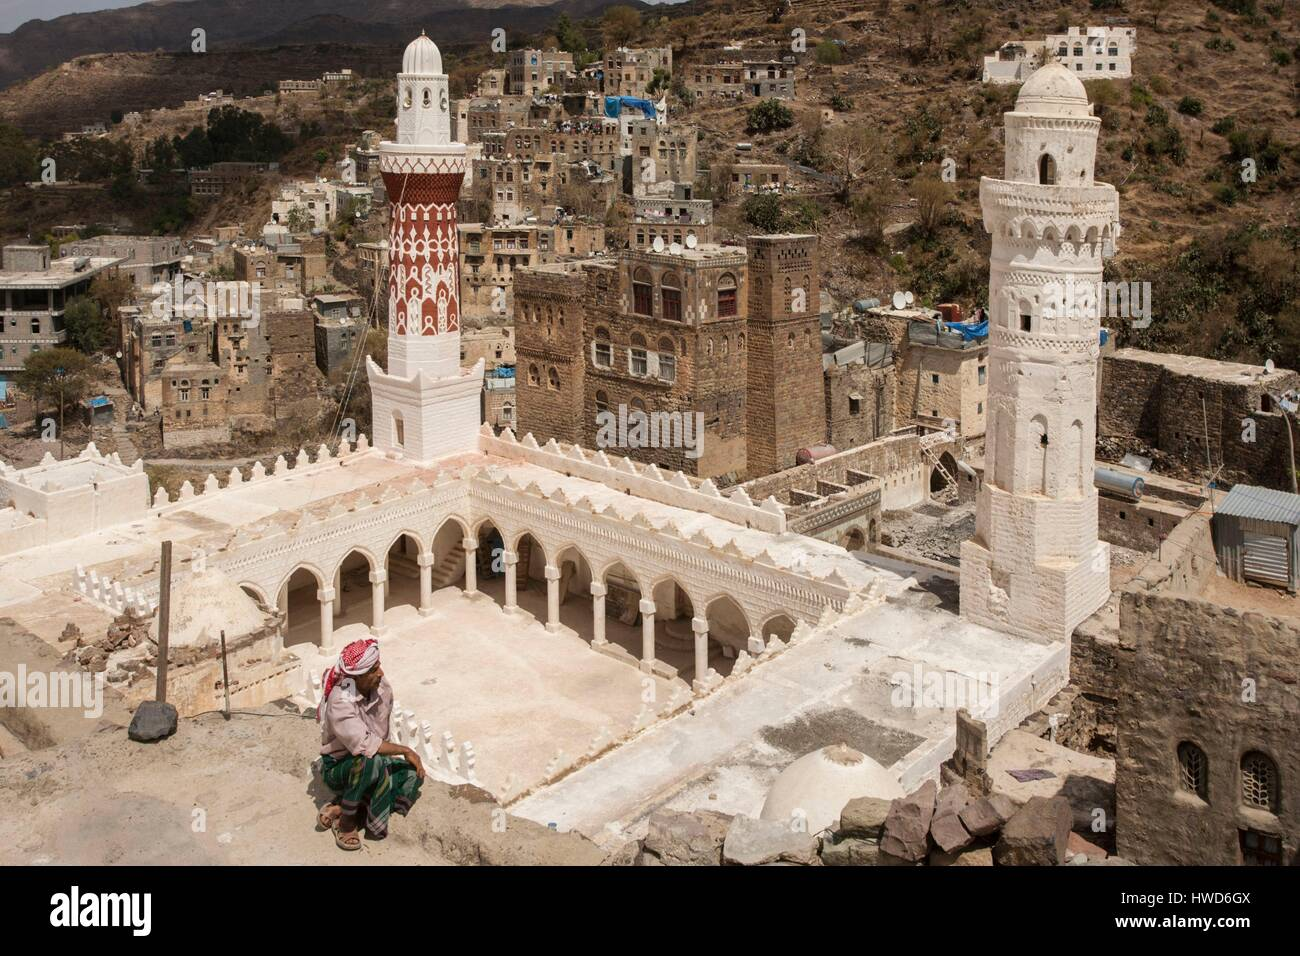 Yemen, the Great Mosque or the Queen Aroua Mosque in Jibla, Aroua reigned in the eleventh century - Stock Image